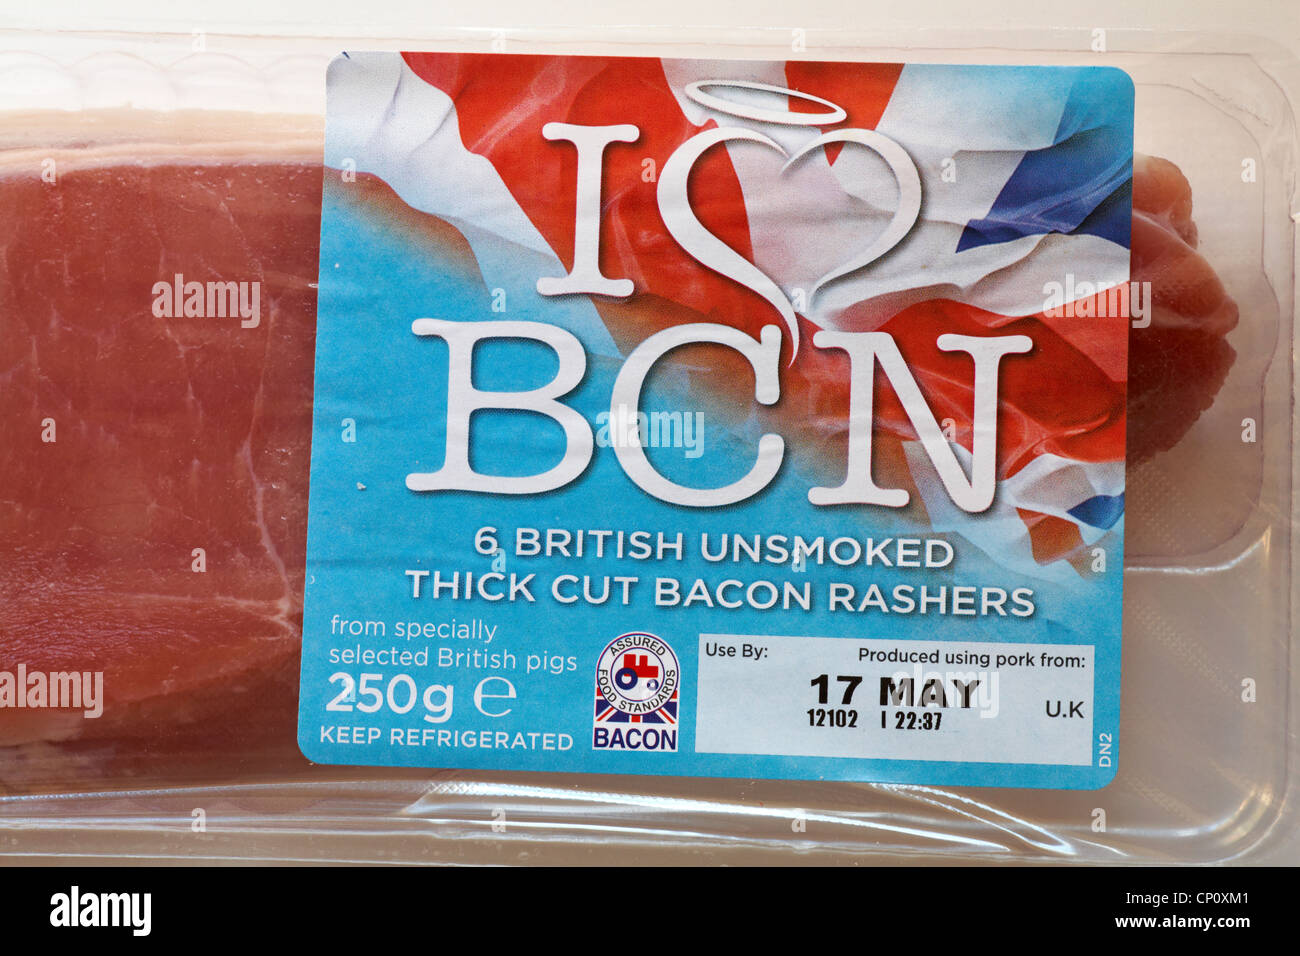 I love BCN Bacon label on pack of 6 British unsmoked thick cut bacon rashers - Stock Image